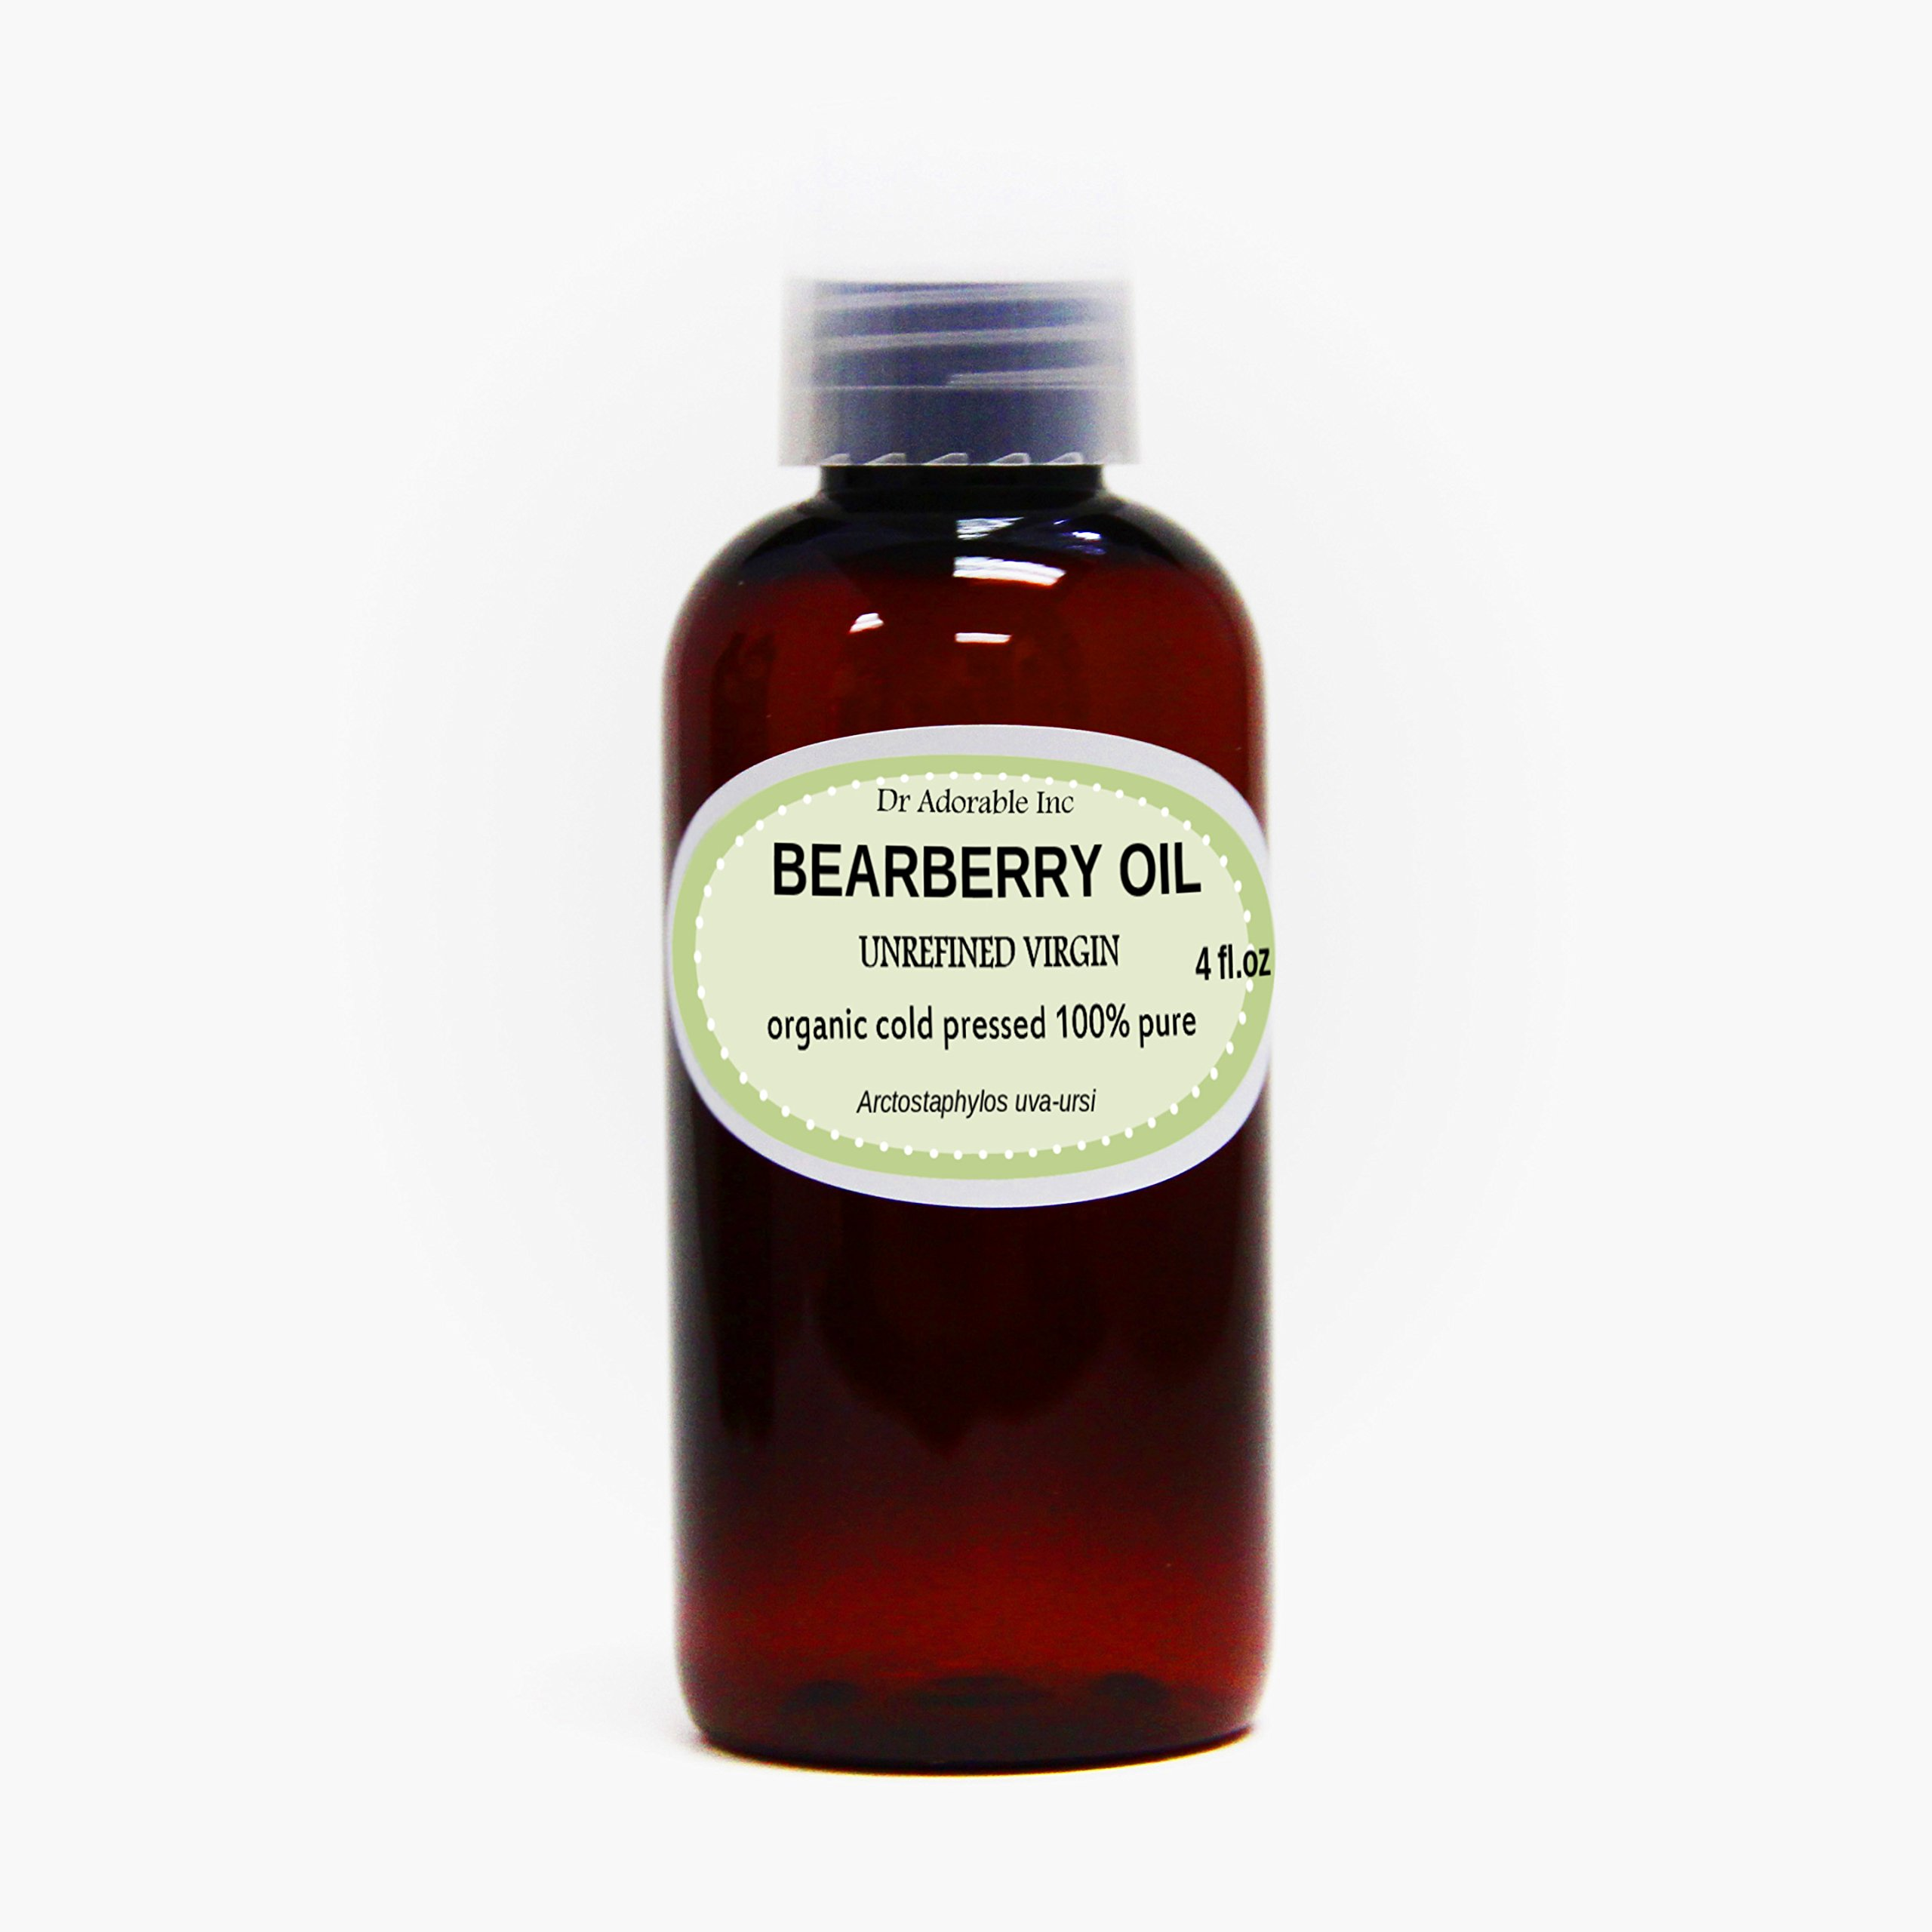 4 Oz Bearberry Seed Oil 100% Pure Organic Cold Pressed